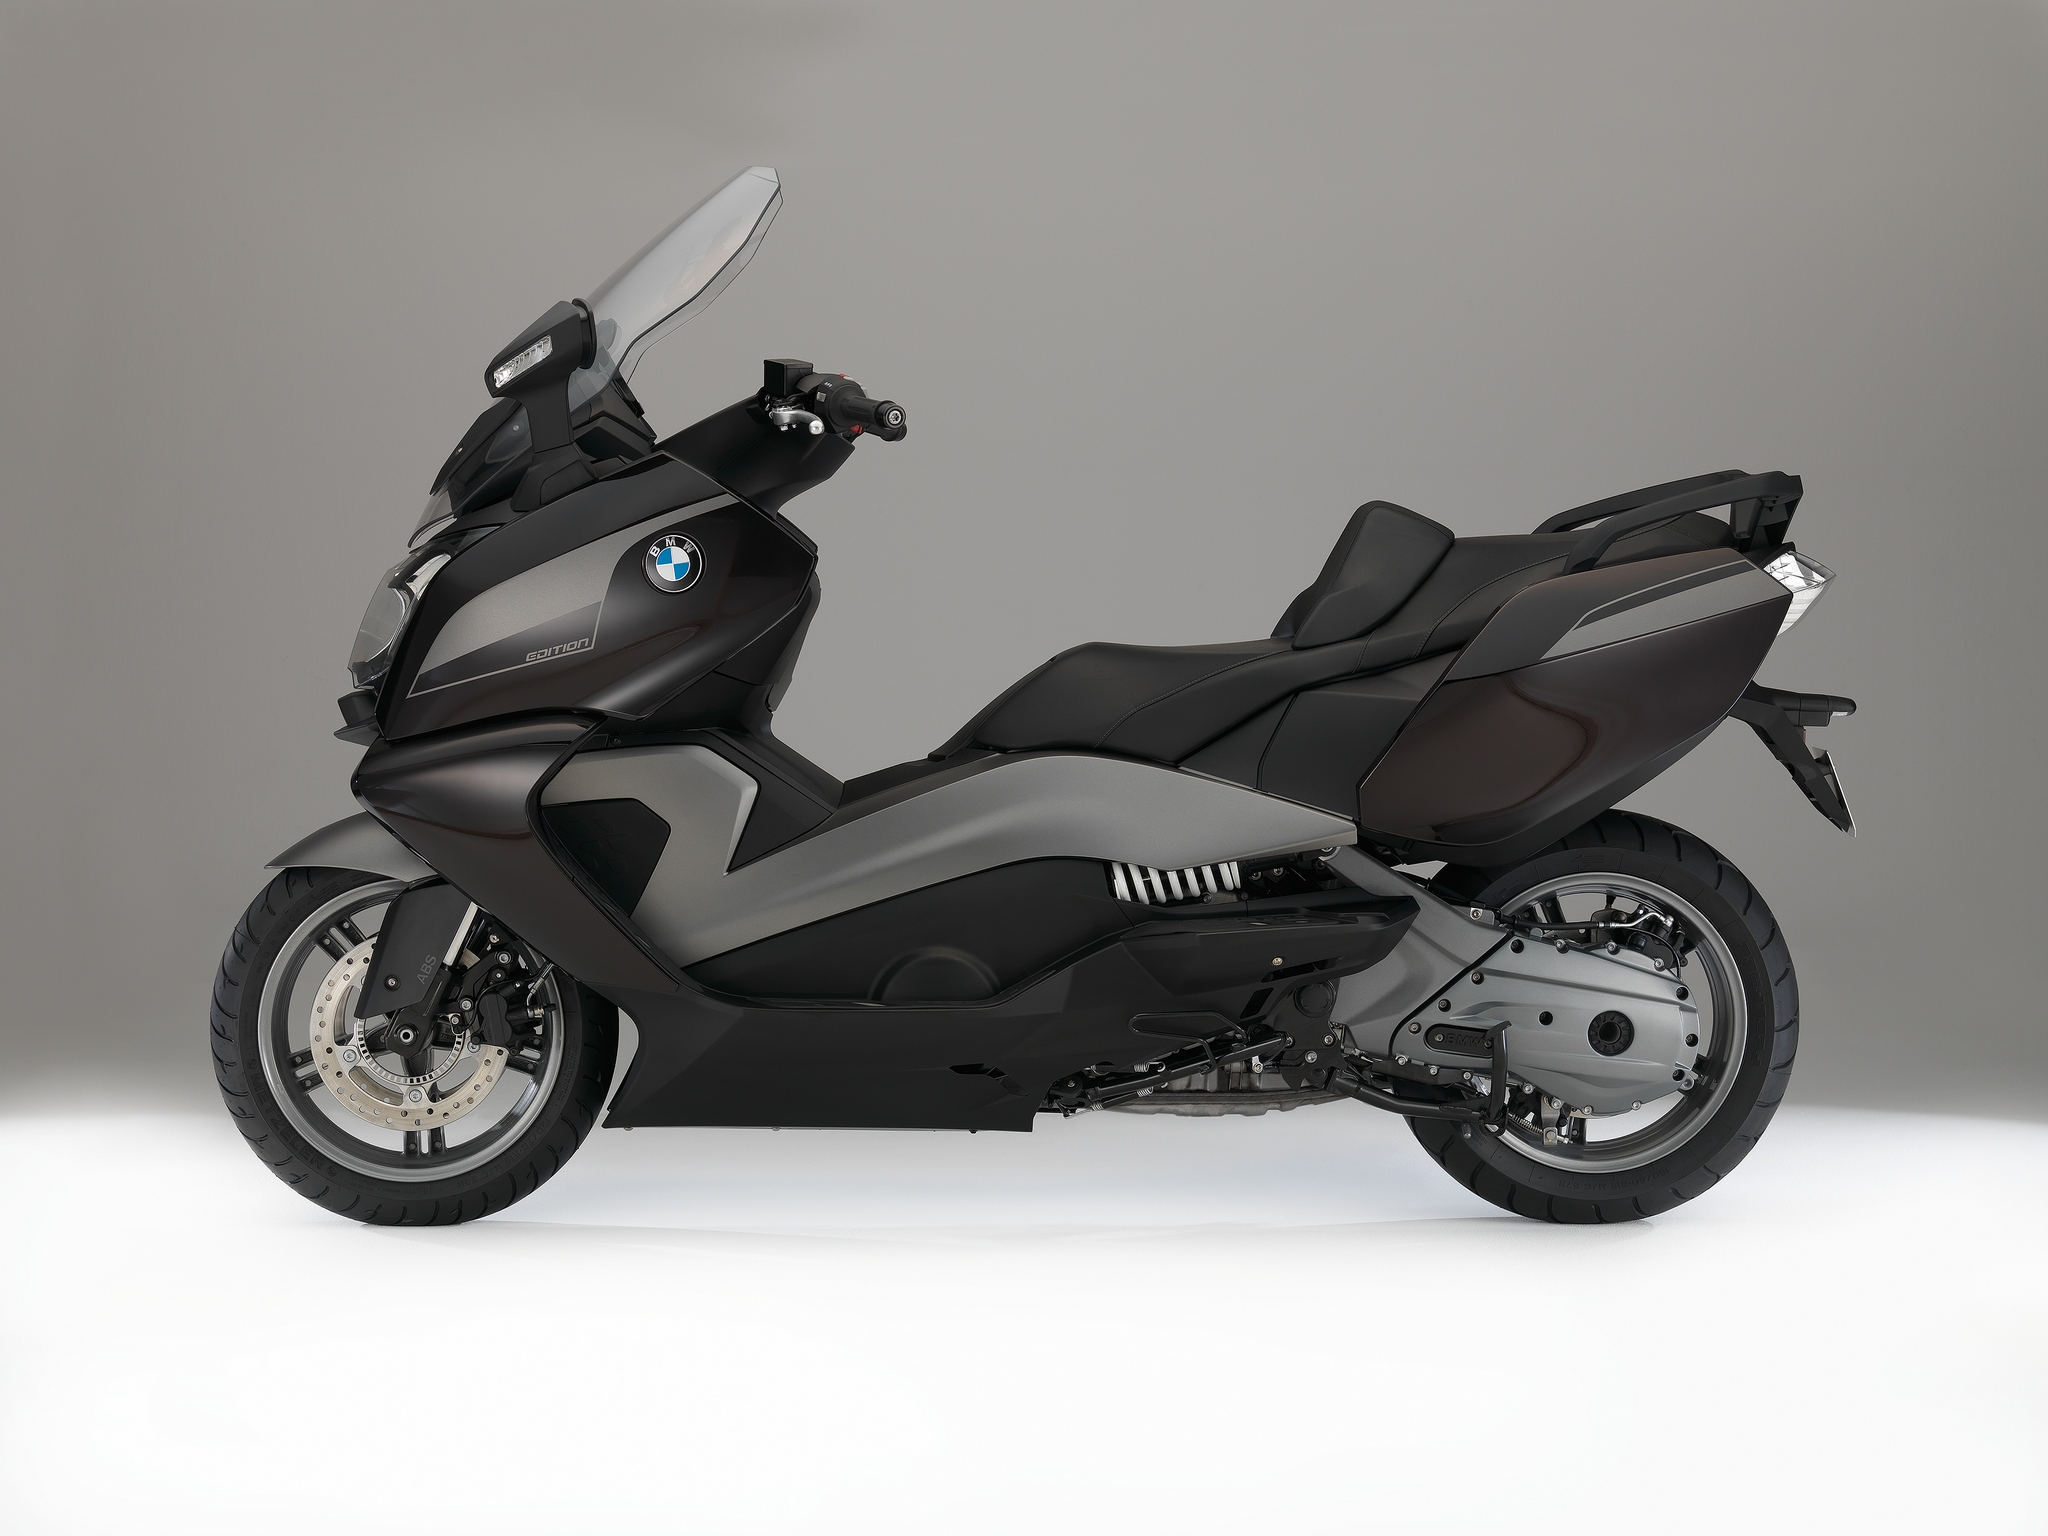 2015 bmw c600 sport and c650gt special edition maxi scooters available from spring 2015. Black Bedroom Furniture Sets. Home Design Ideas